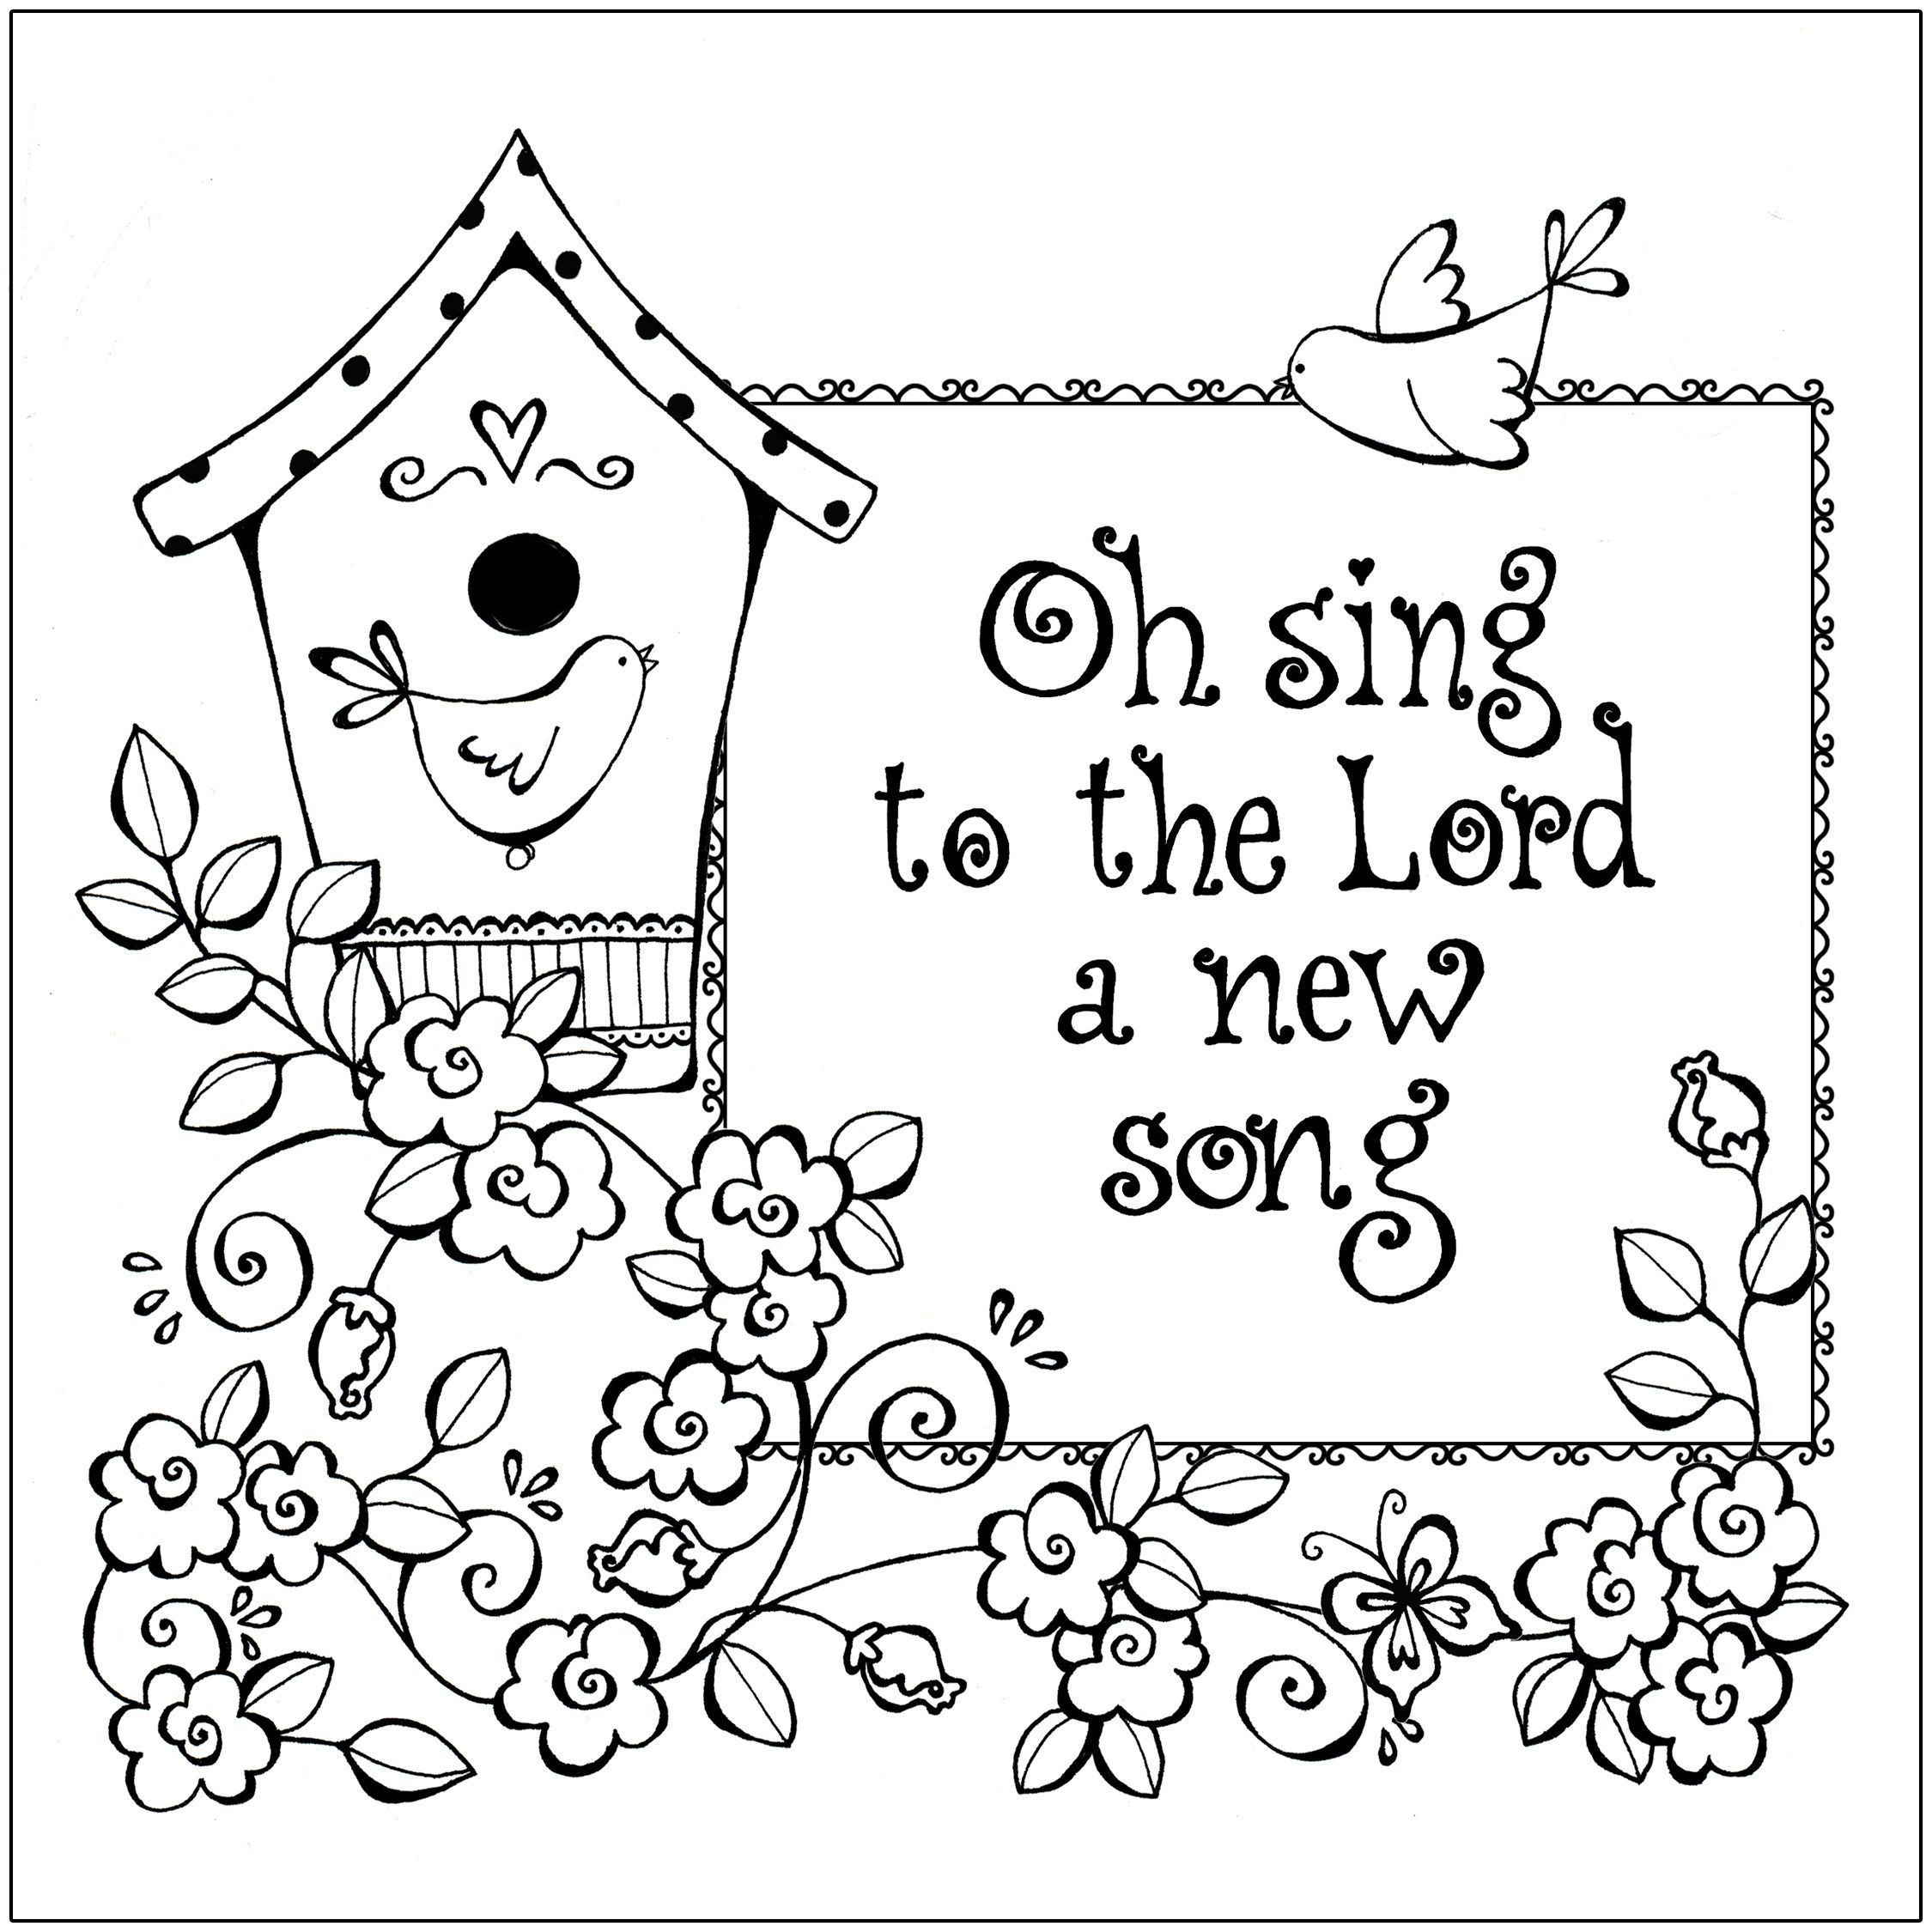 Birdhouse coloring page by karla dornacher oh sing to the lord a new song